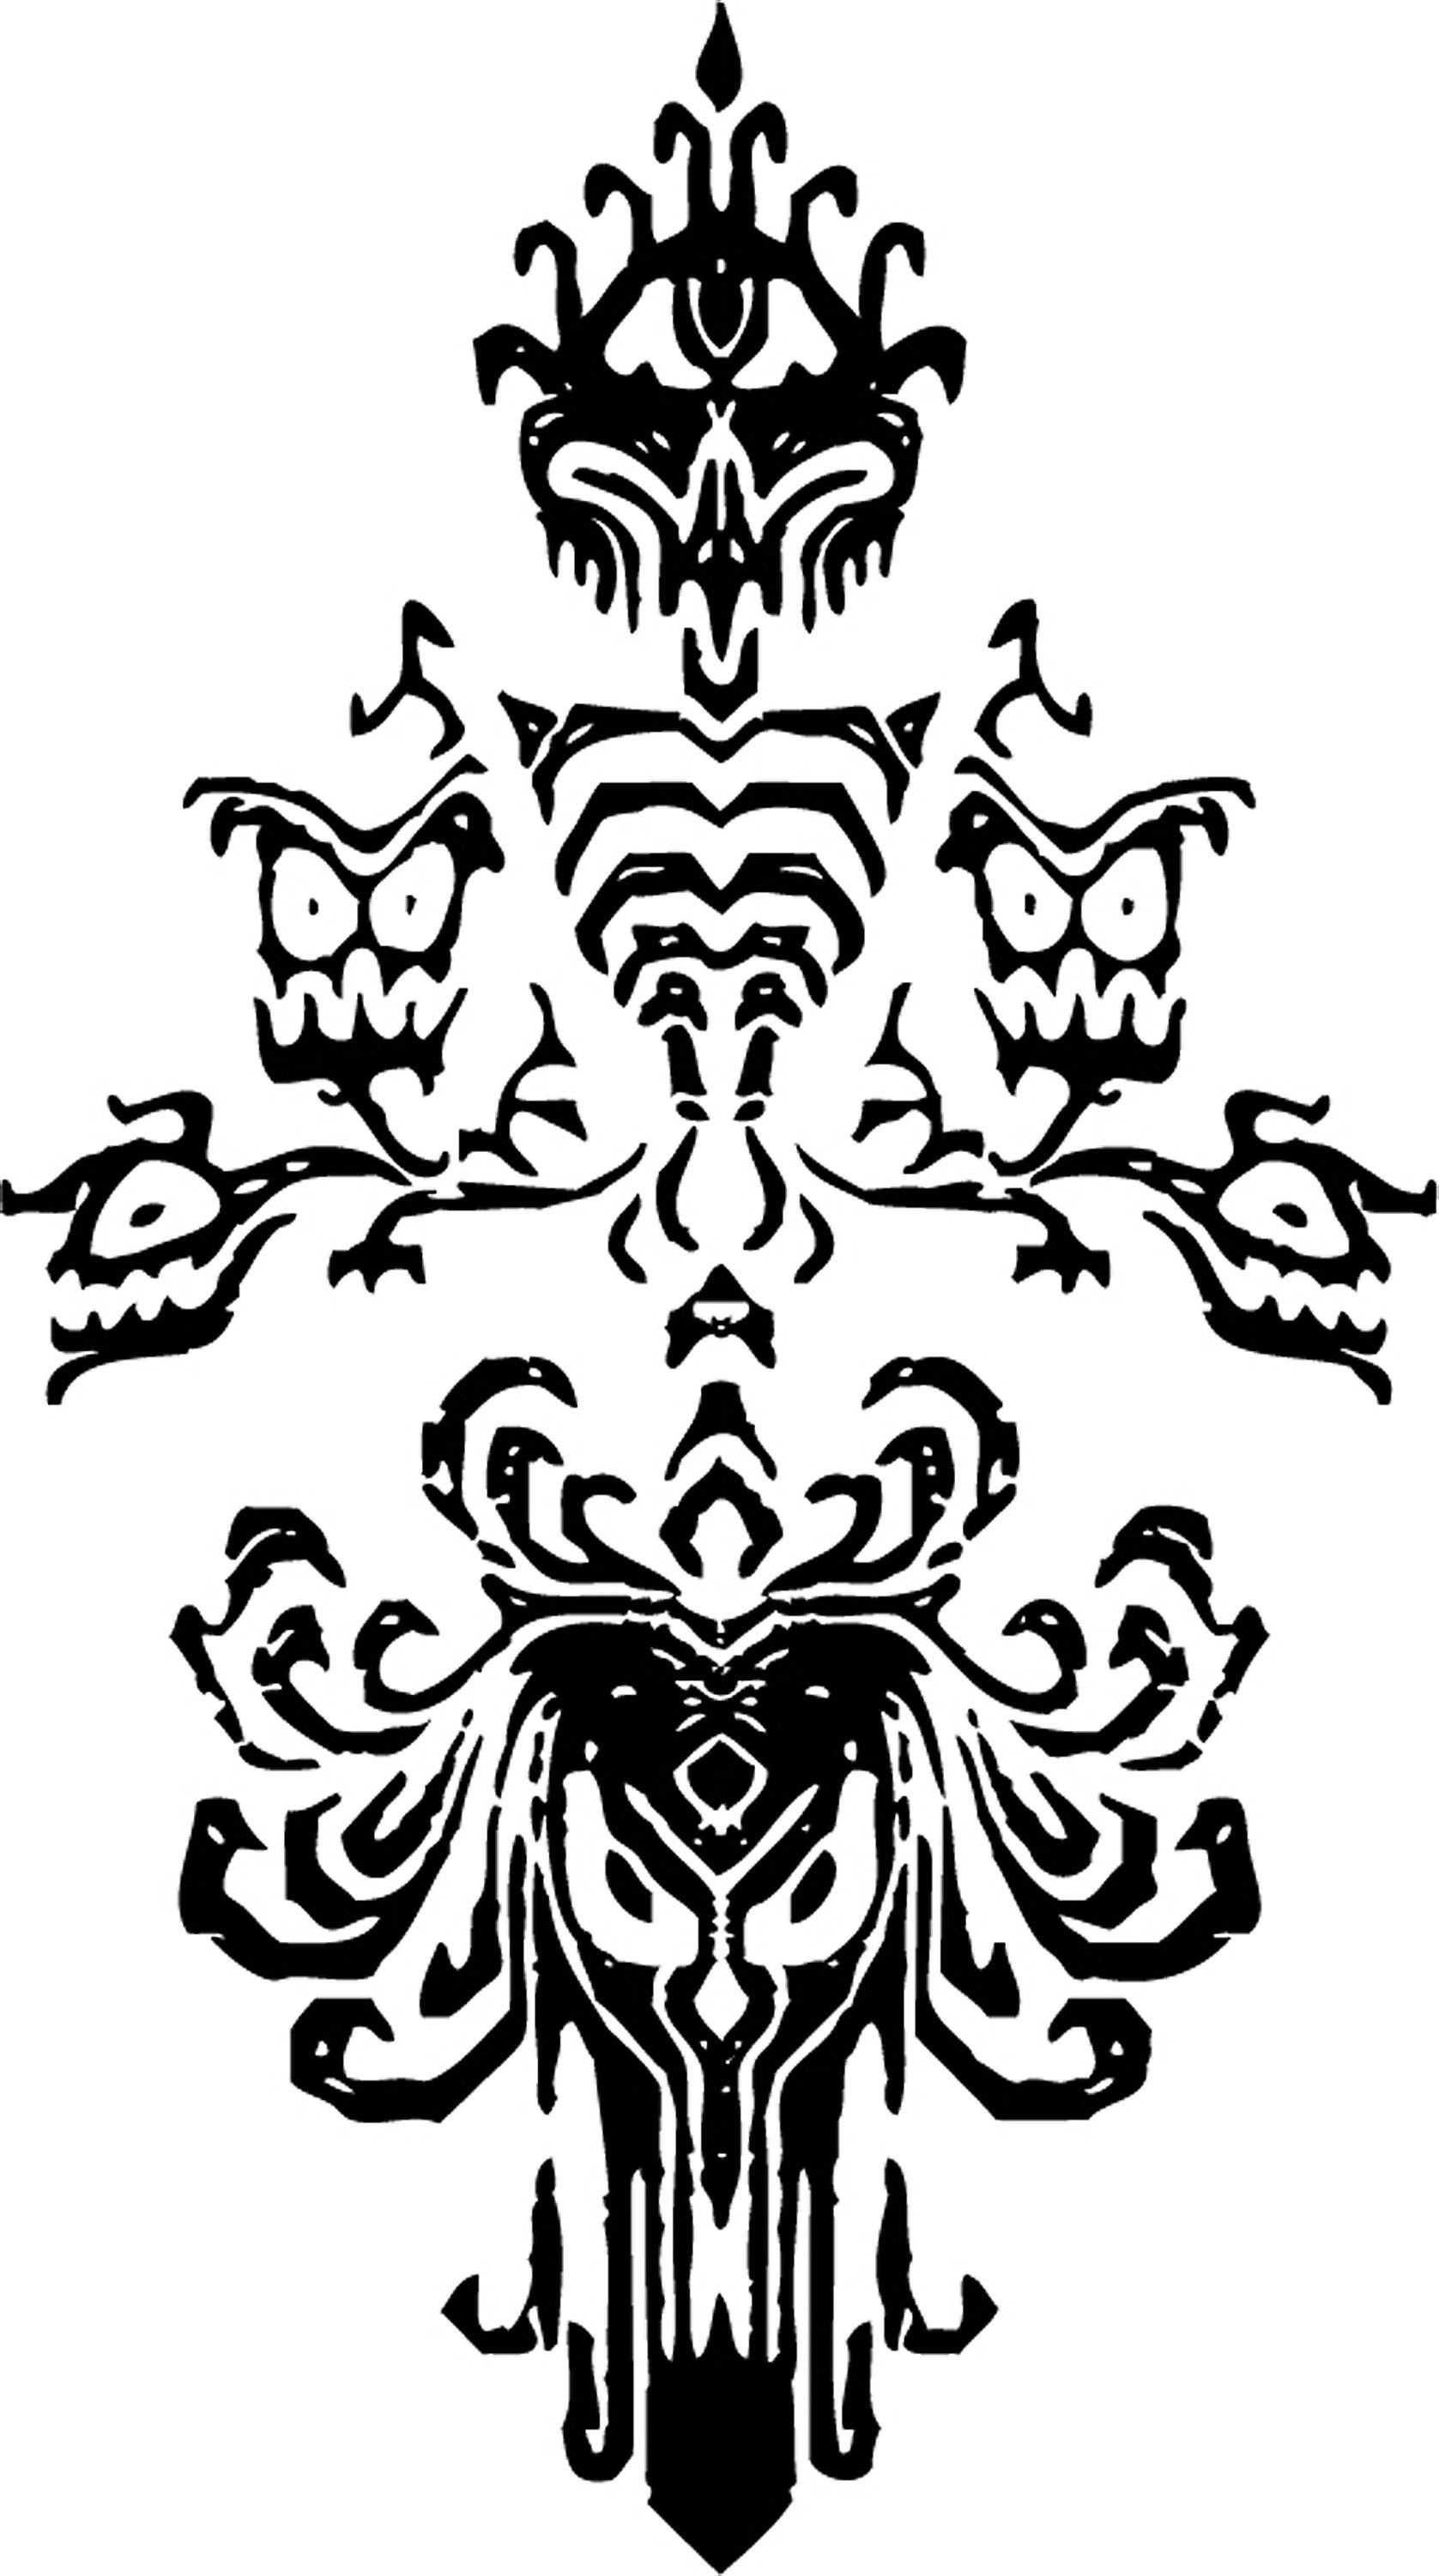 Haunted House Clipart Png Lovely Haunted House Clipart Png Shop Clipart At Getdrawin Haunted Mansion Wallpaper Haunted Mansion Tattoo Haunted Mansion Decor